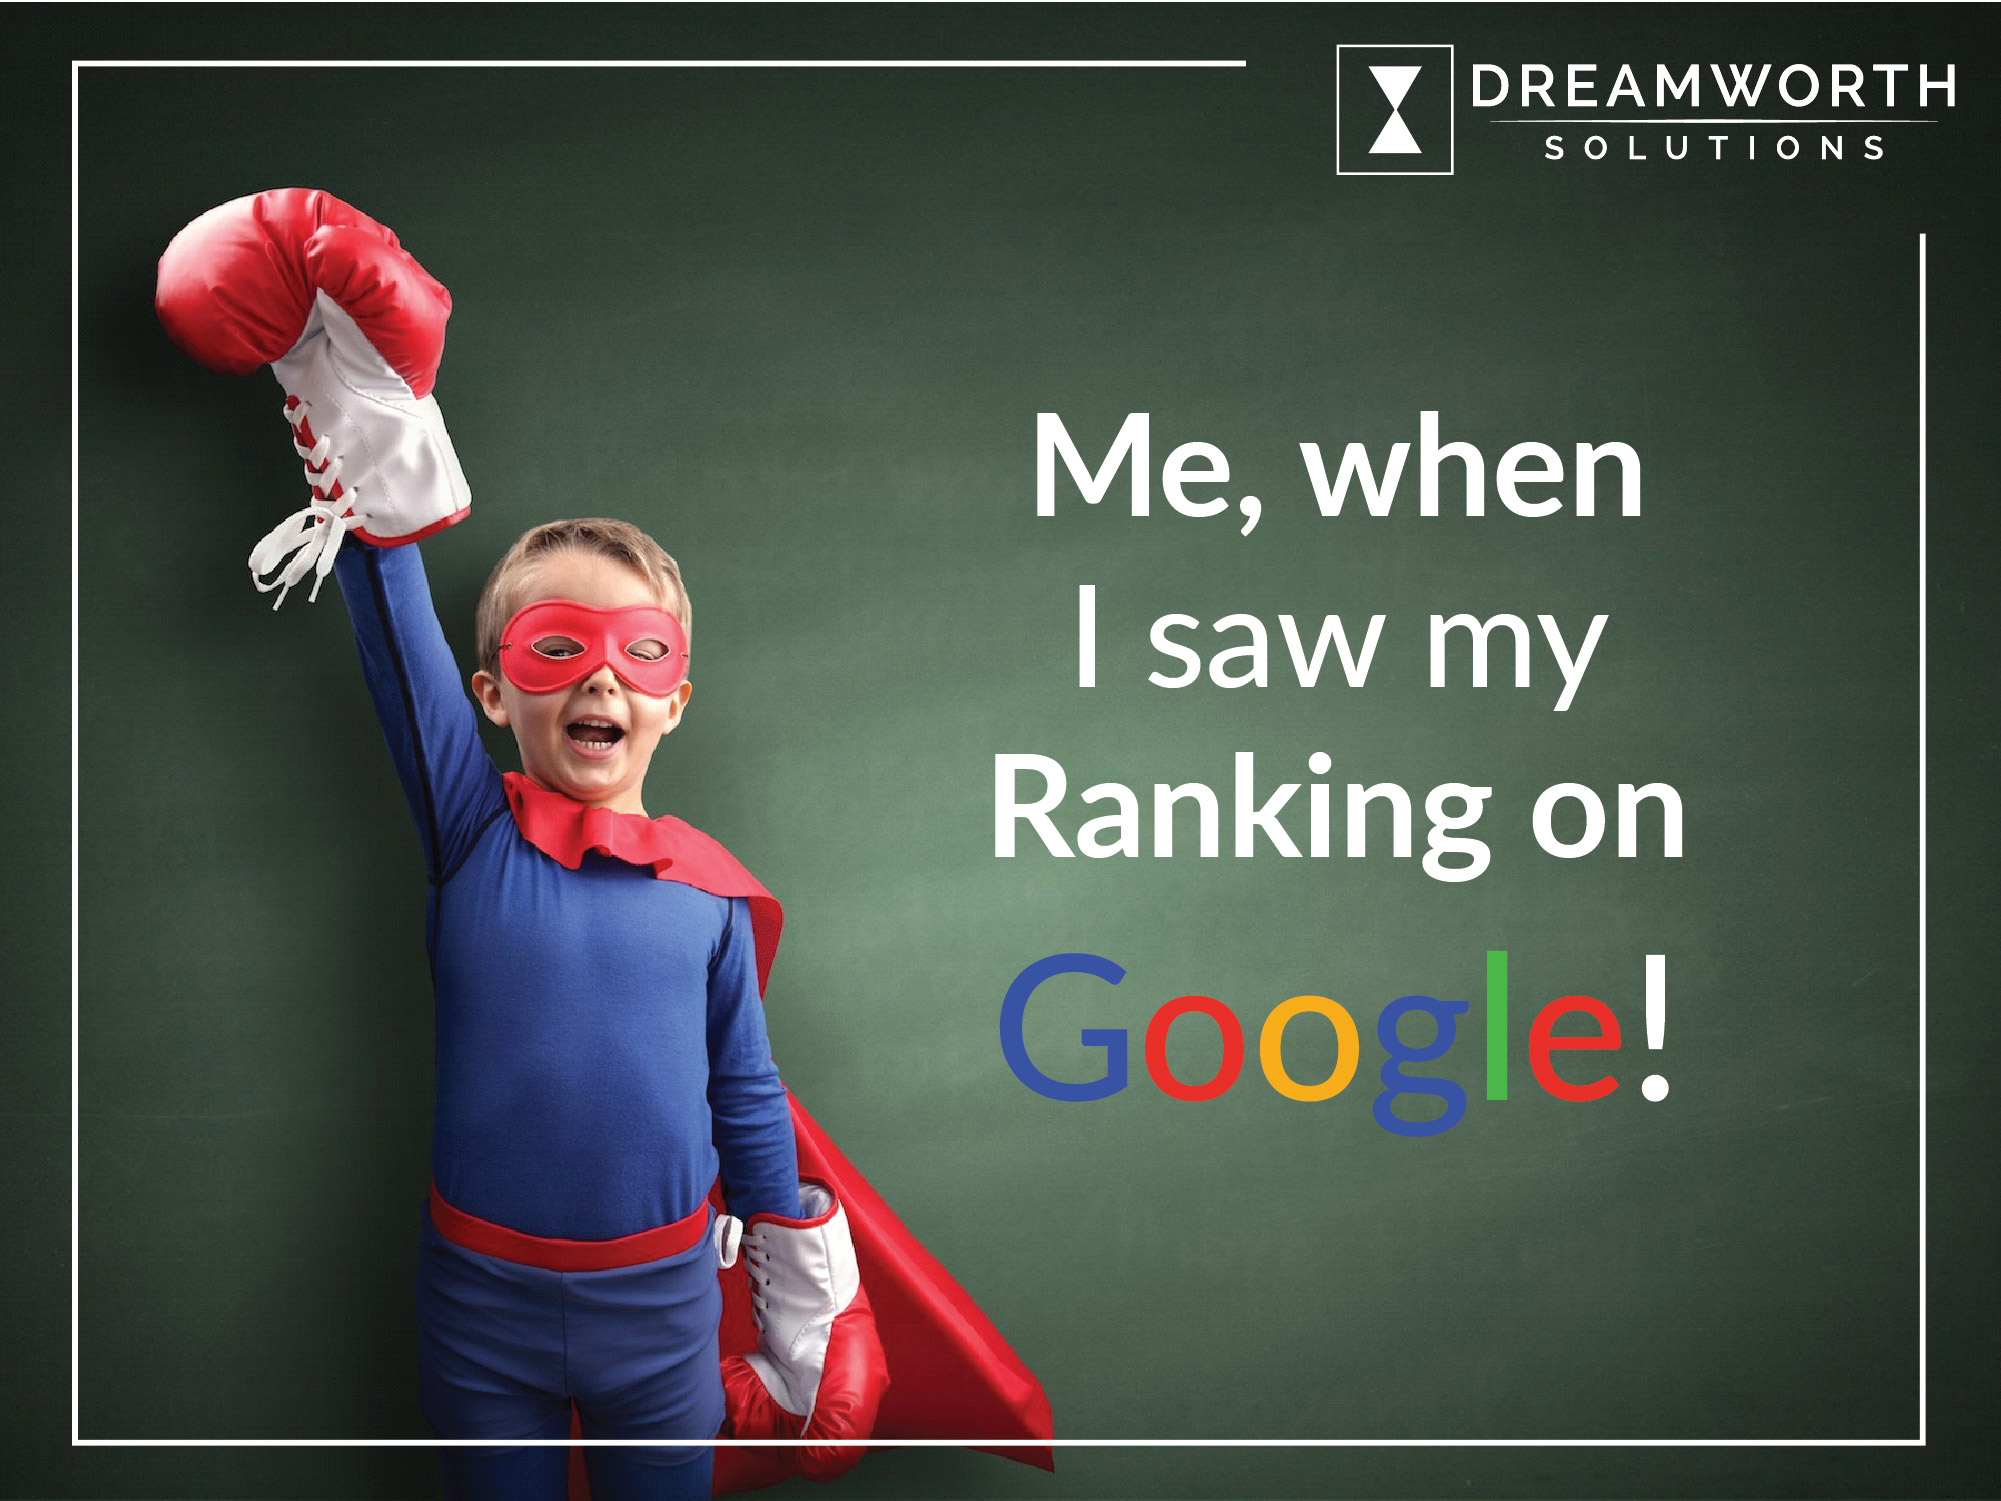 Dreamworth provide best seo services